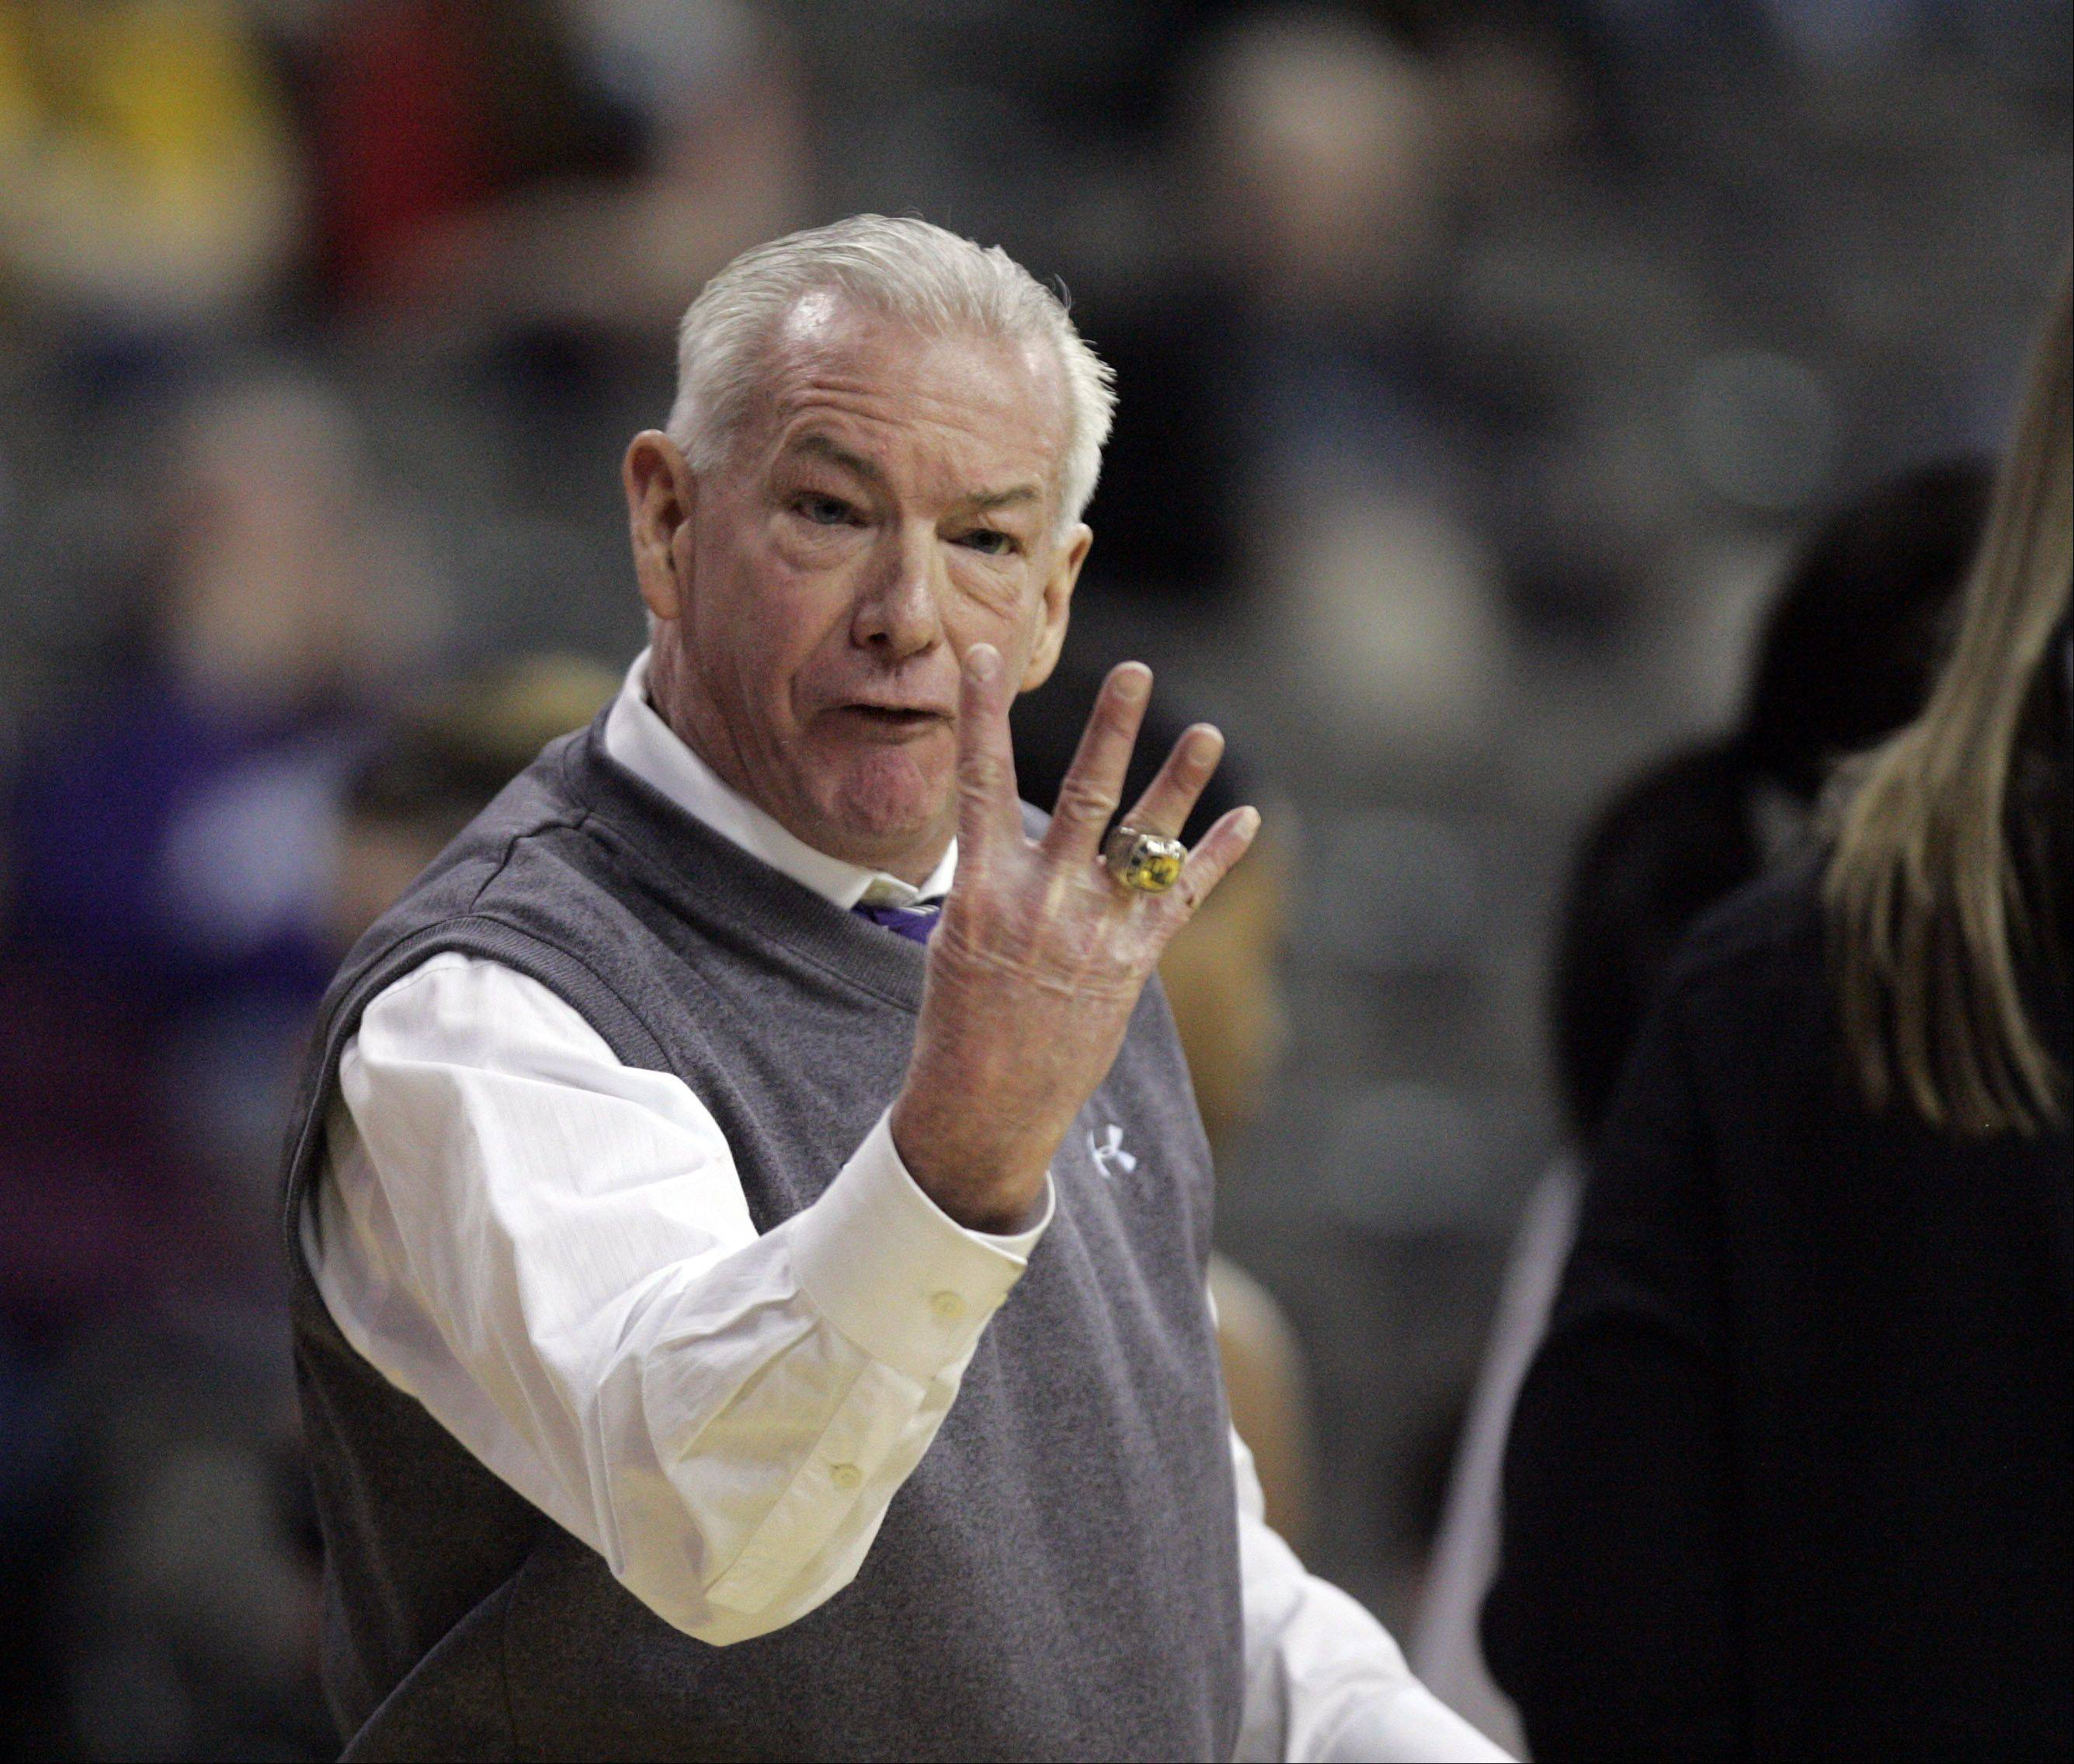 Northwestern head coach Joe McKeown make a point to an official at the Big Ten Women's Basketball Tournament at the Sears Centre in Hoffman Estates. Iowa defeated Northwestern 60-55 to advance.